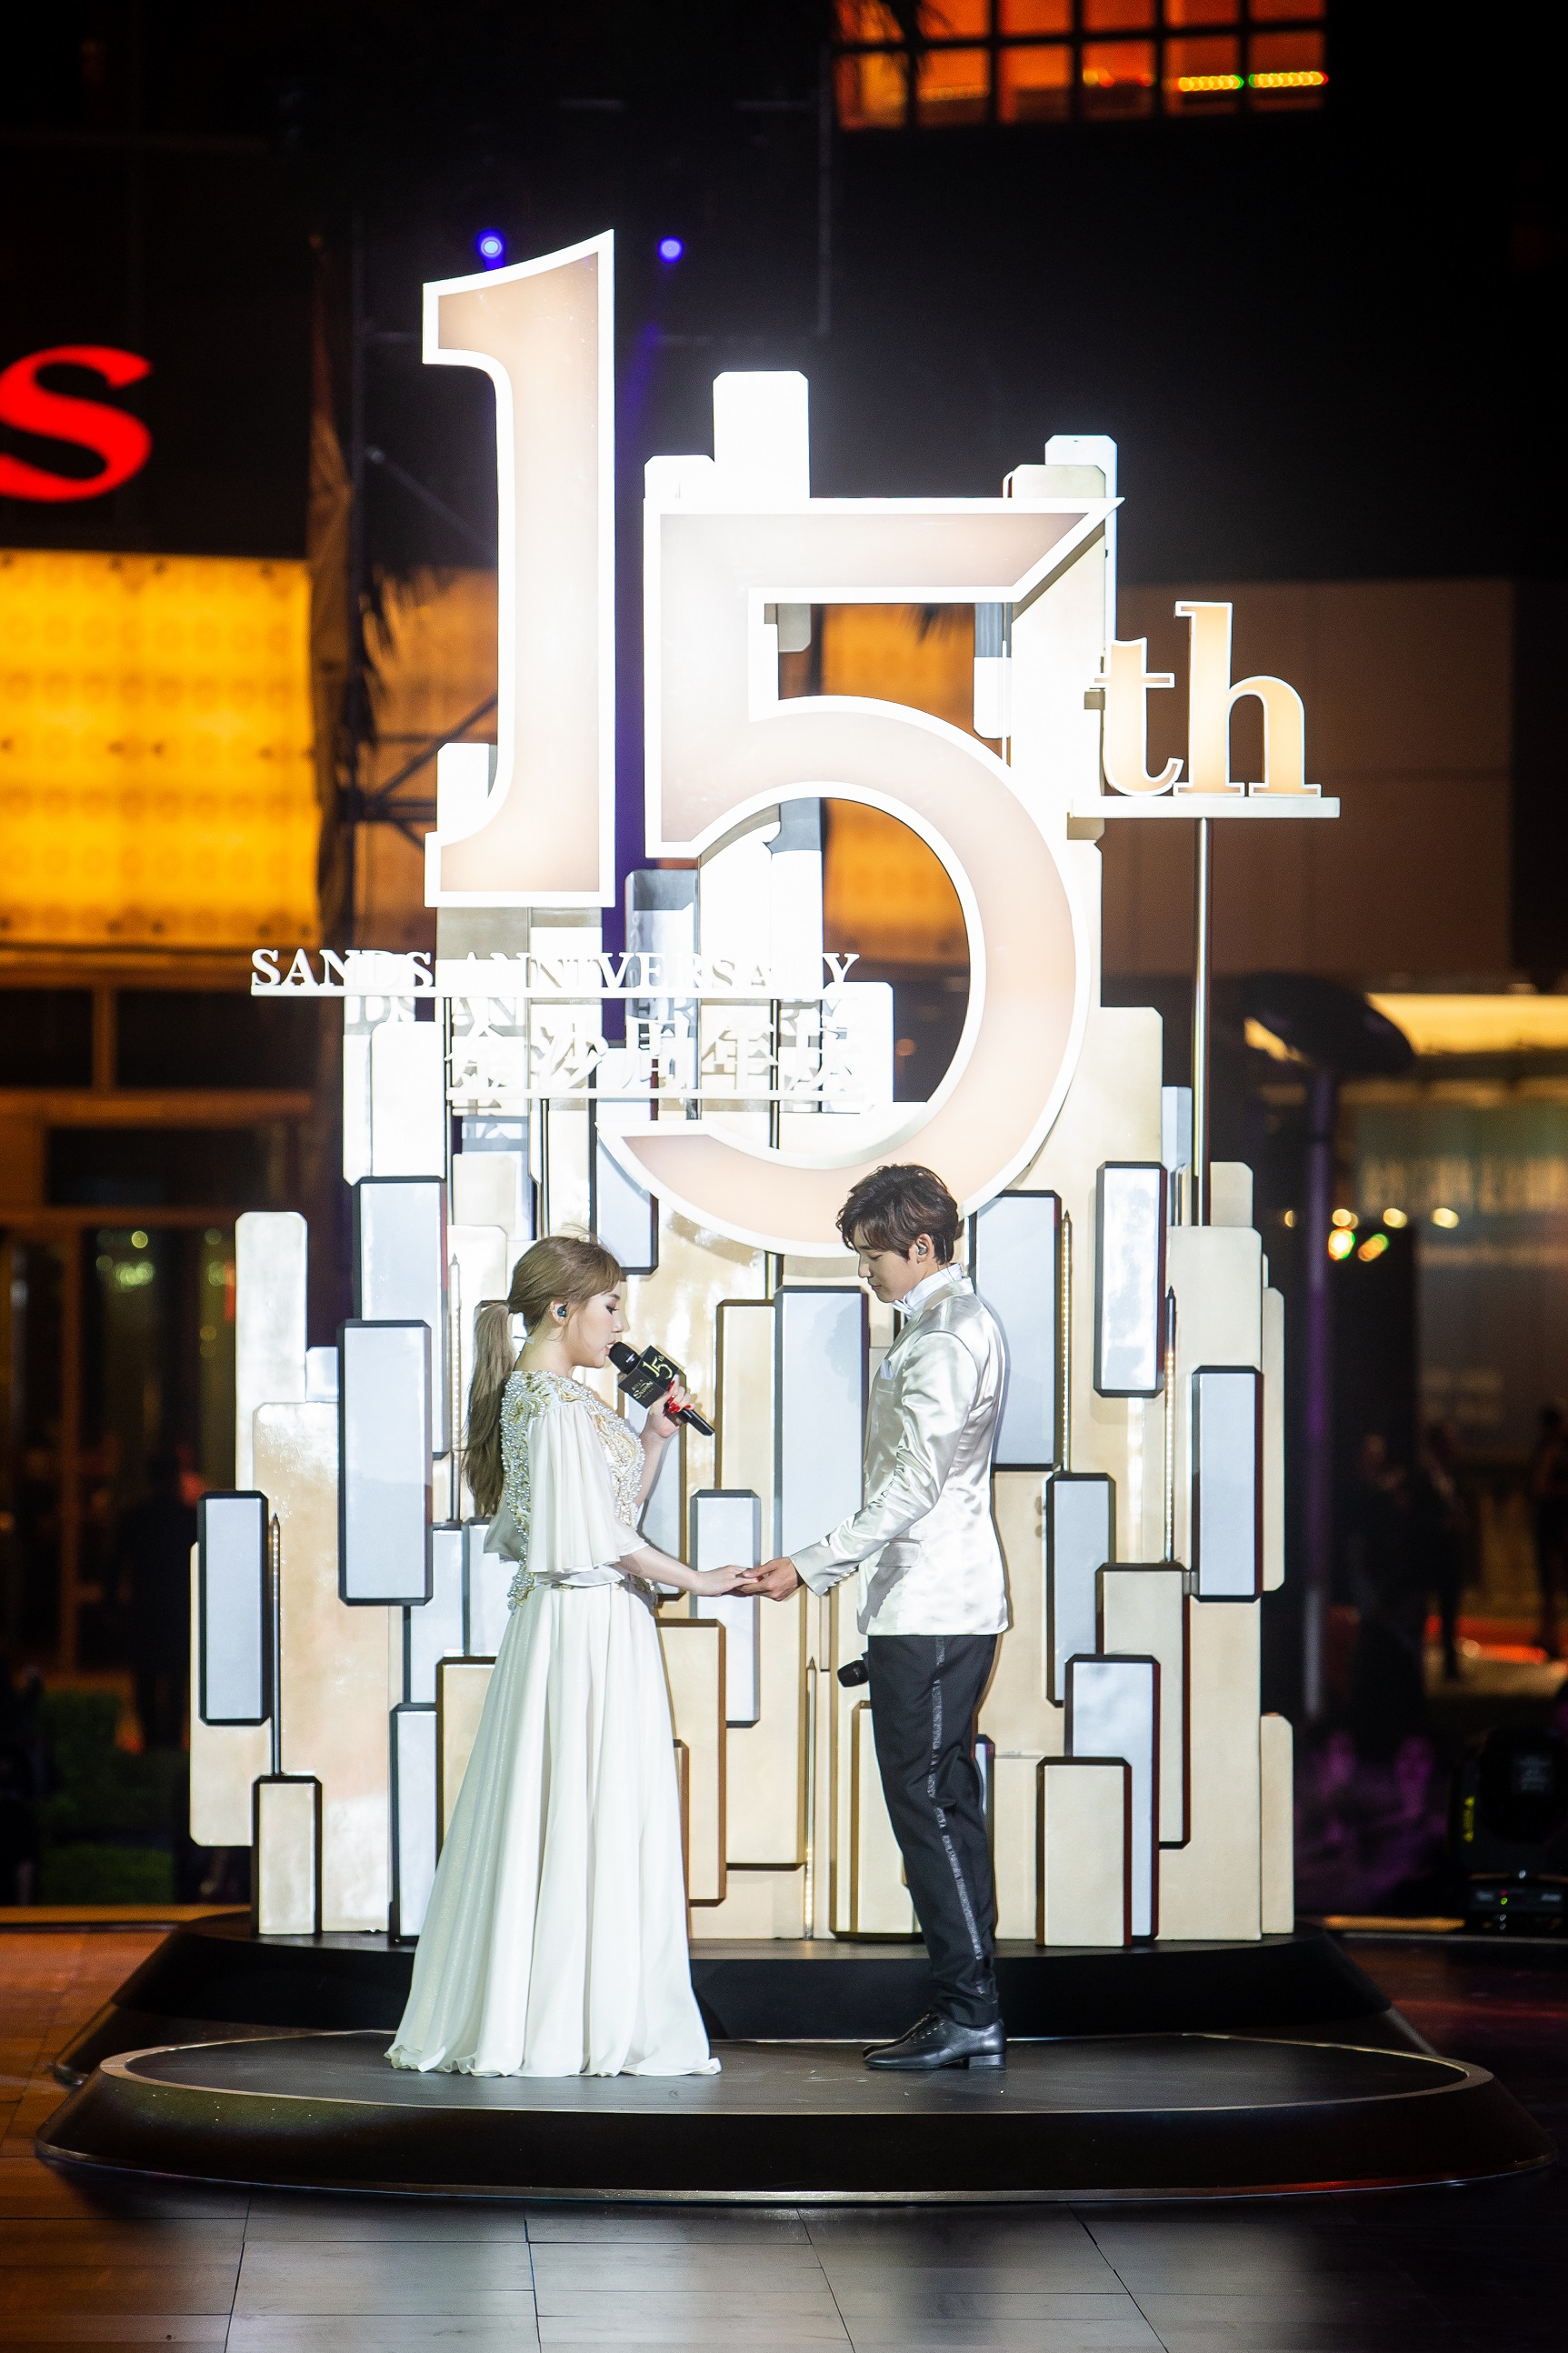 Korean singers Kevin Woo and Jimin Park  performent atthe 15th anniversary celebration for Sands Macao